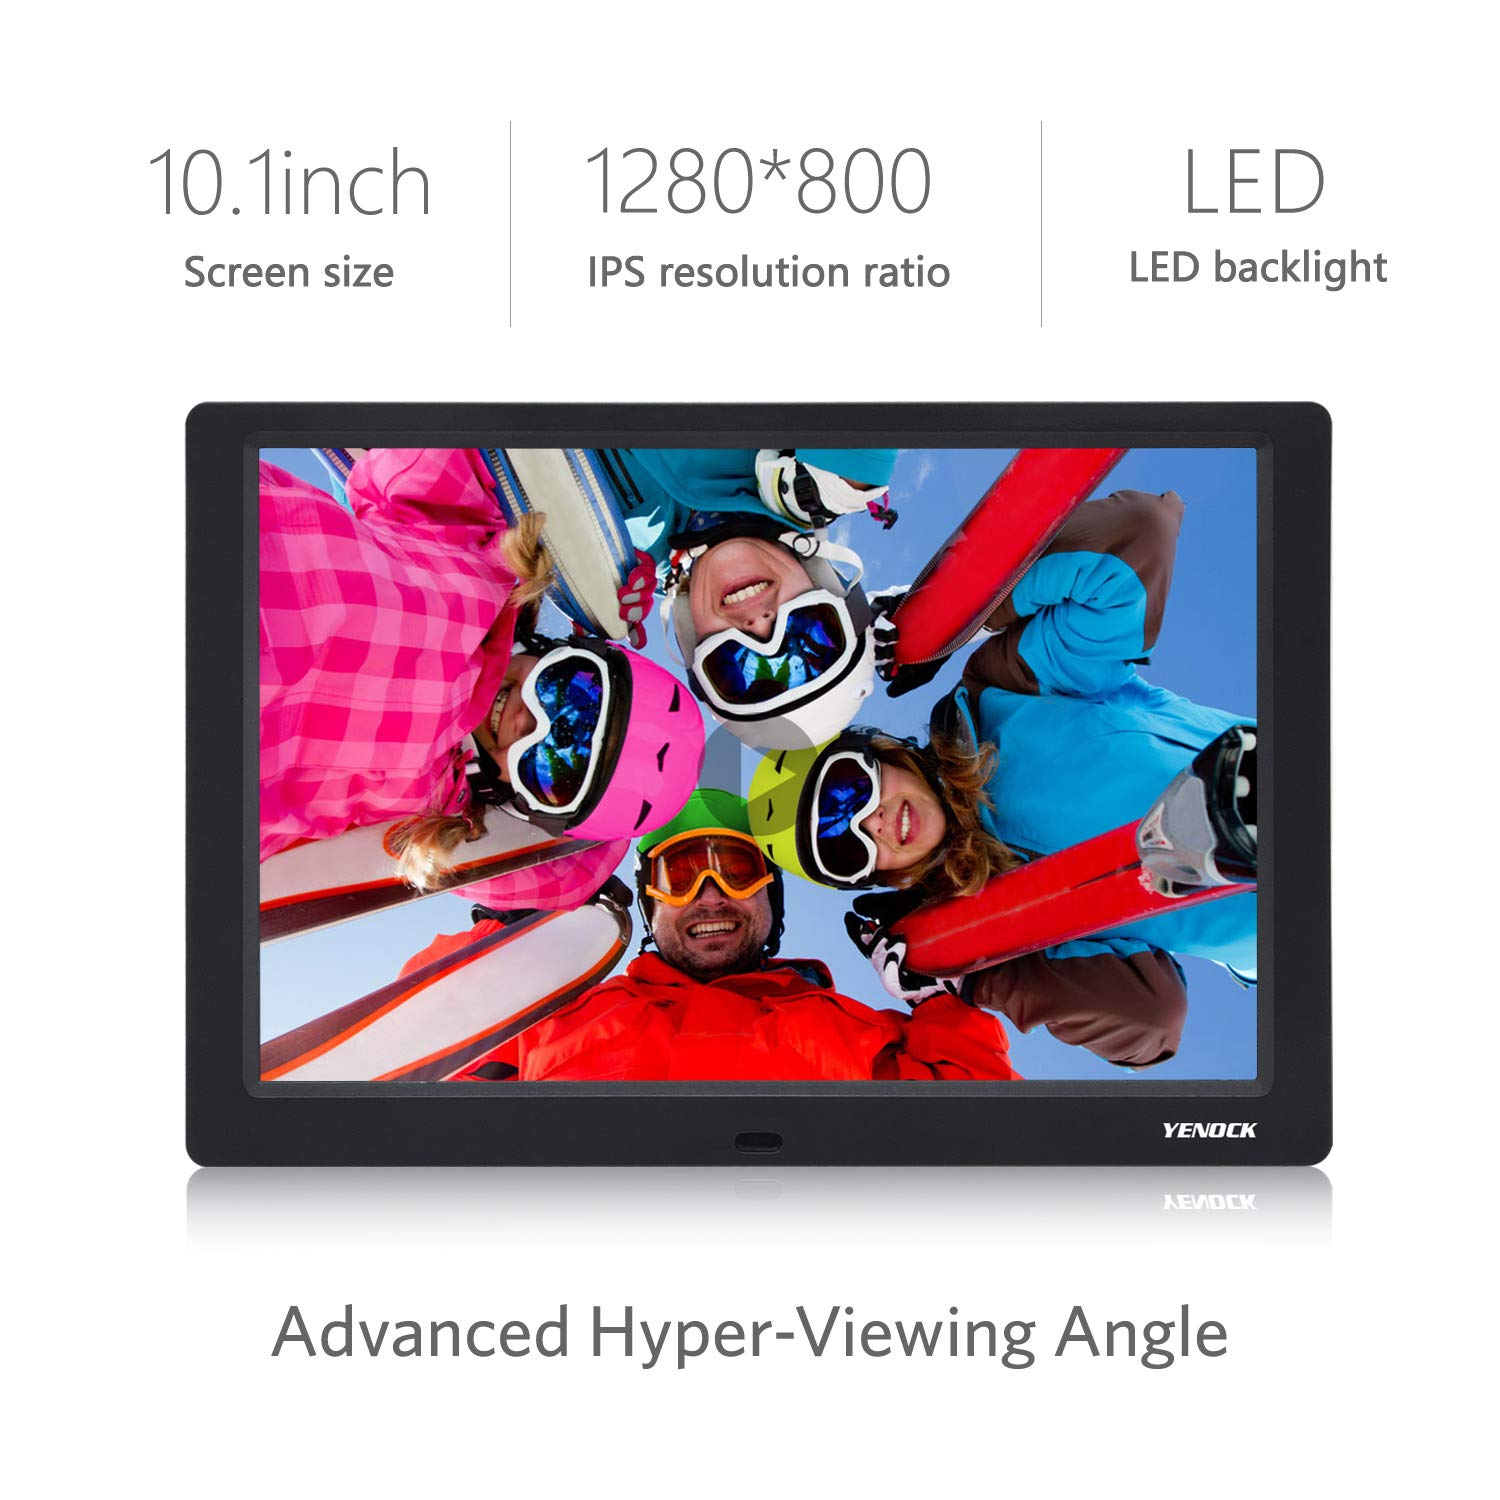 YENOCK Digital Picture Frame, 10.1 Inch IPS Screen Digital Photo Frame 1280×800 Pixels High Resolution Photo/Music/HD Video Player/Calendar/Alarm Auto On/Off Advertising Player with Remote Control by YENOCK (Image #5)